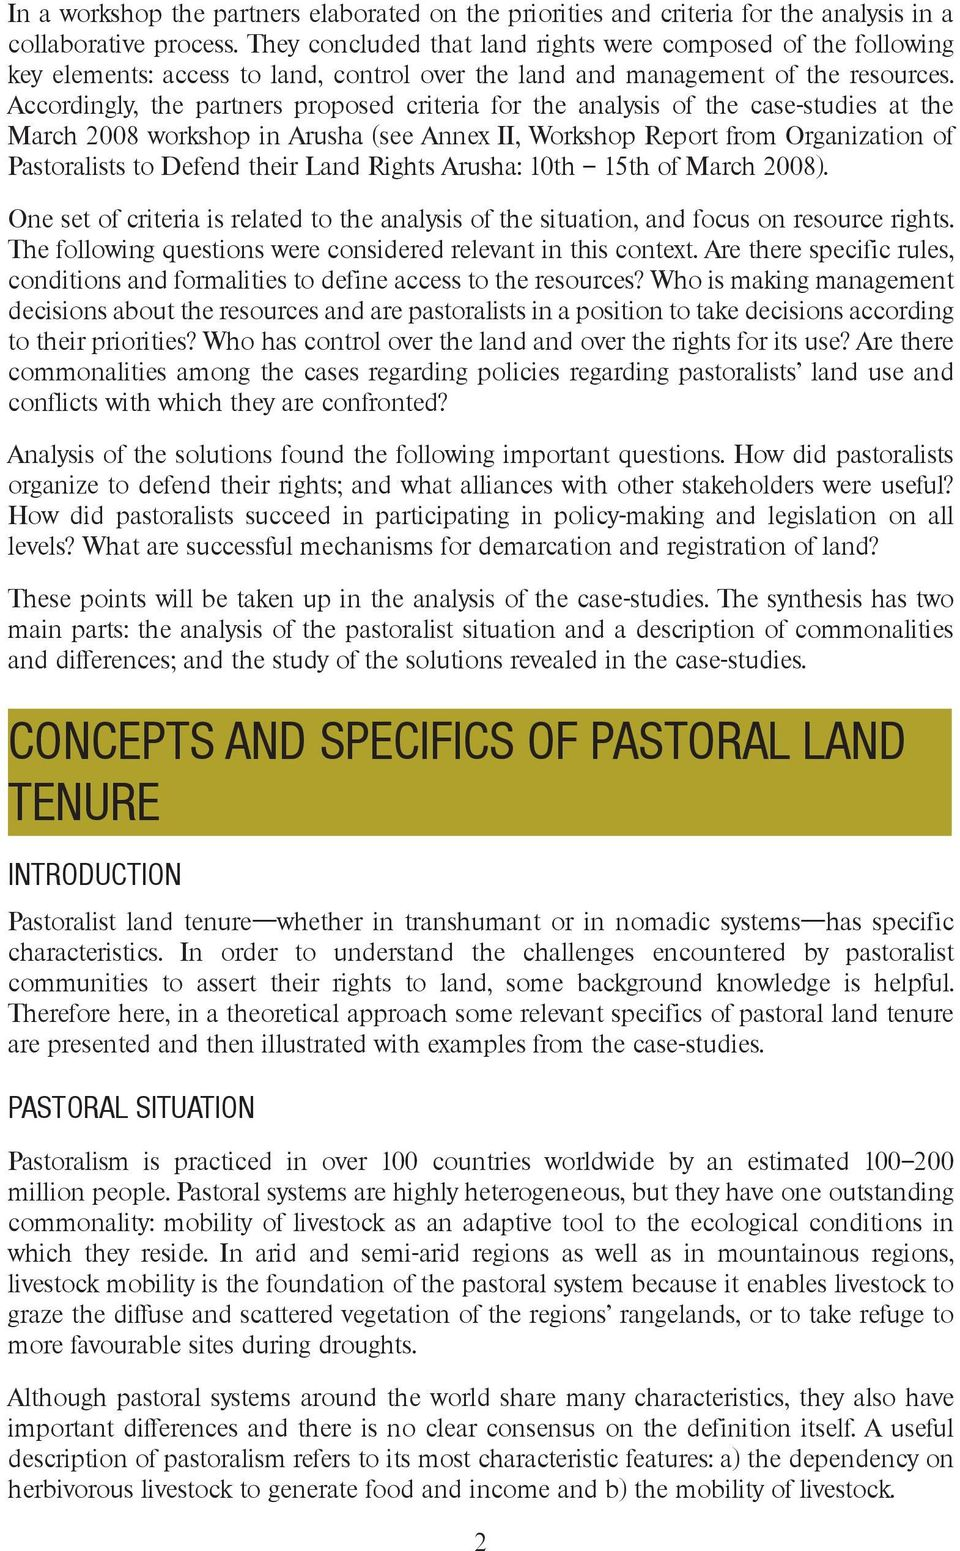 Accordingly, the partners proposed criteria for the analysis of the case-studies at the March 2008 workshop in Arusha (see Annex II, Workshop Report from Organization of Pastoralists to Defend their